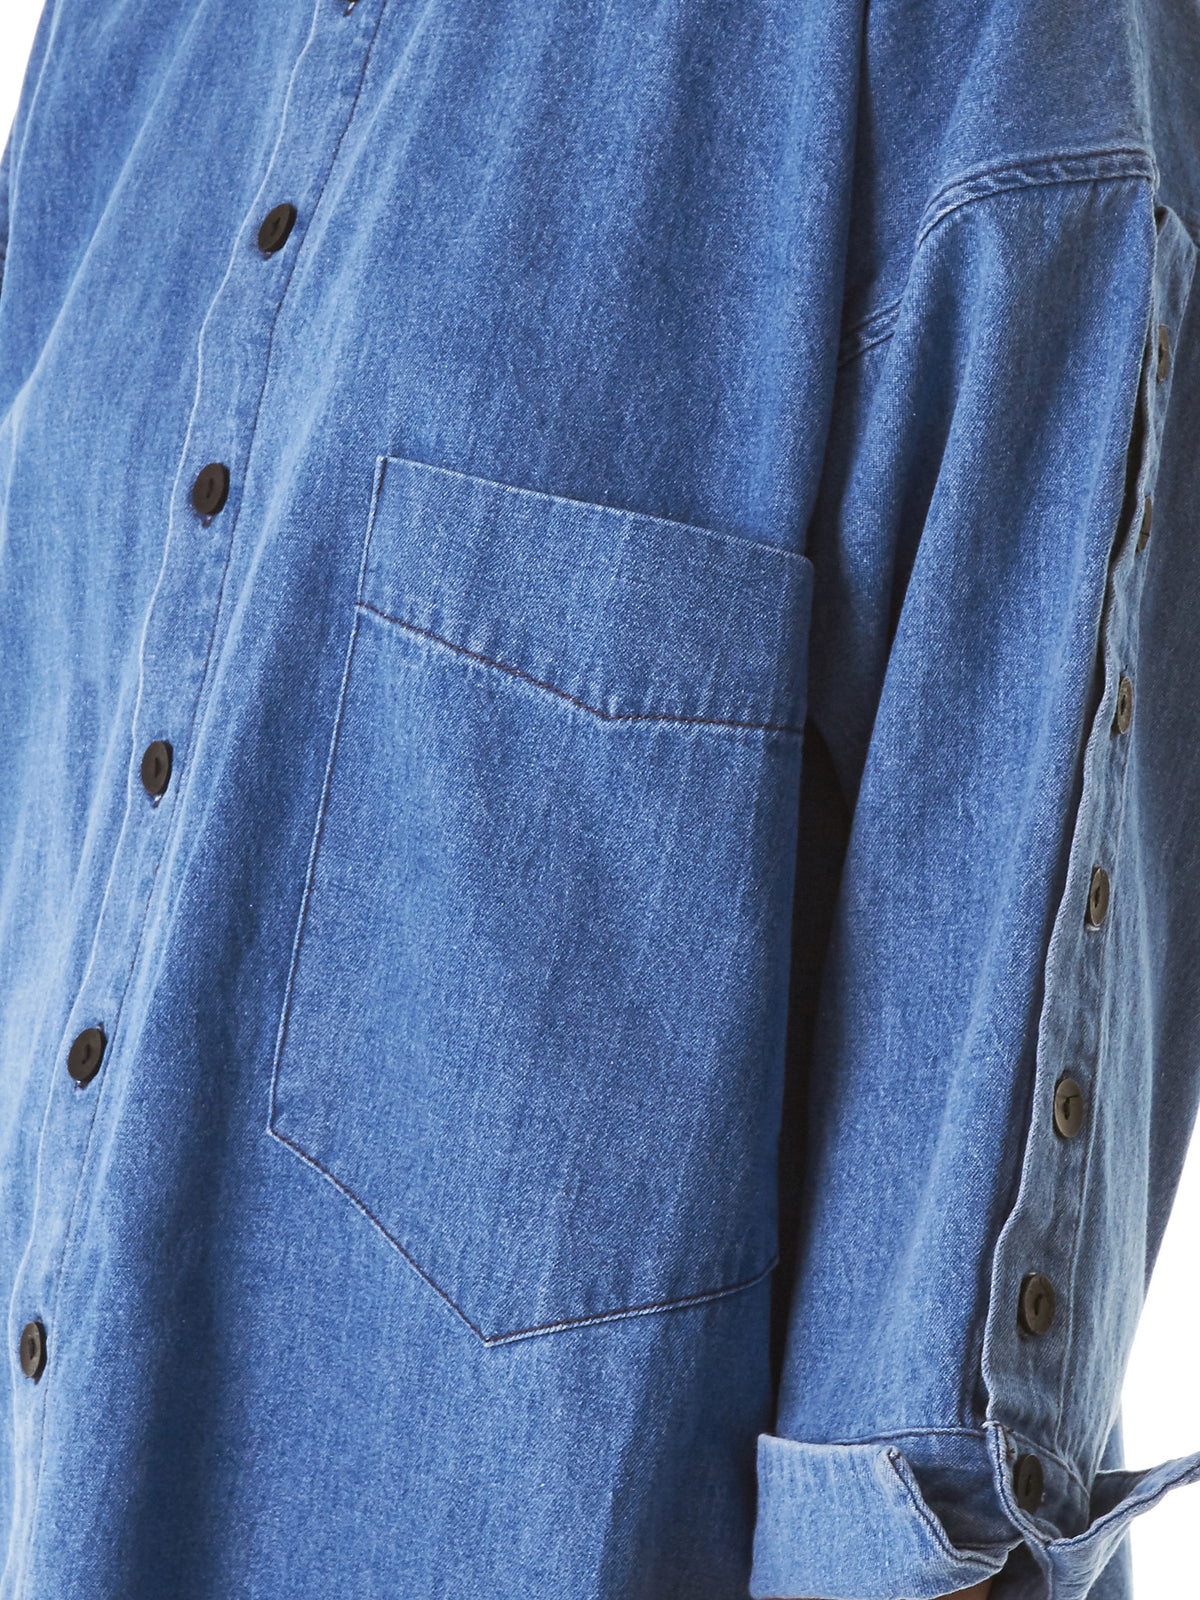 Deconstructed Button-Down (782-BUTTON-UP-DENIM-MEDLIGHT) - H. Lorenzo